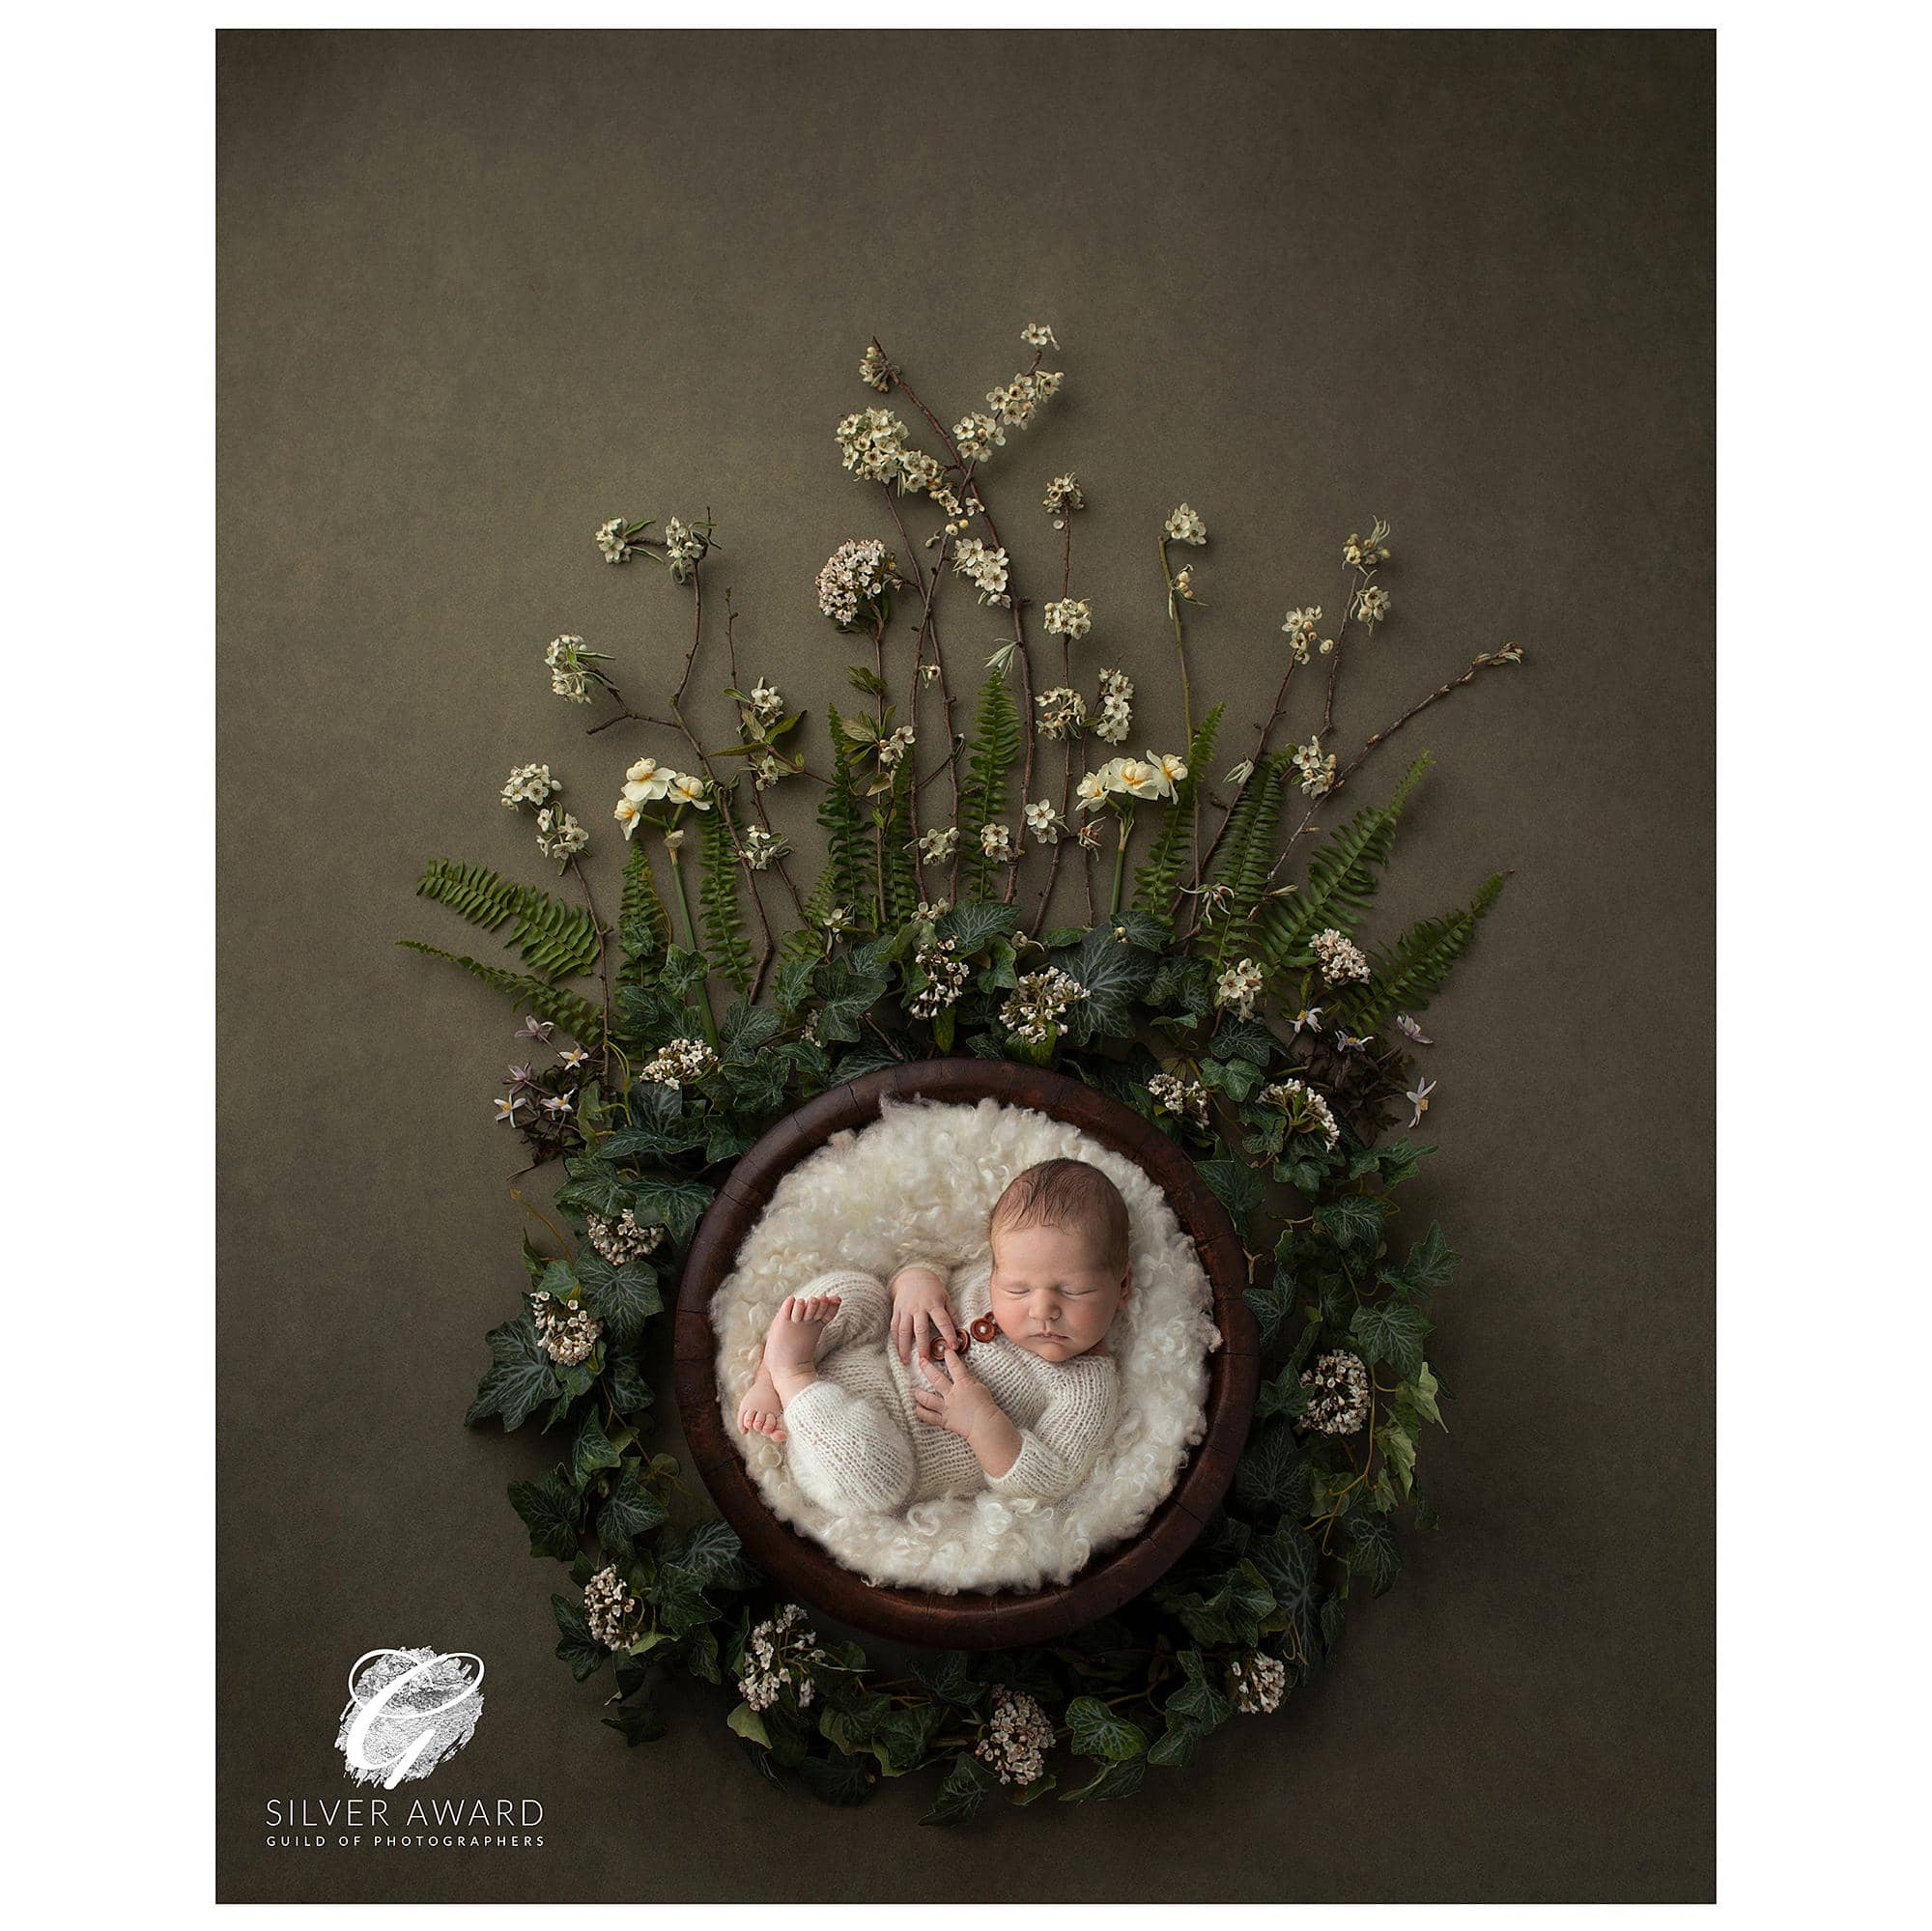 Photograph of a newborn baby in a wooden bowl on an olive green floral backdrop wins a Silver Award with the Guild of Photographers